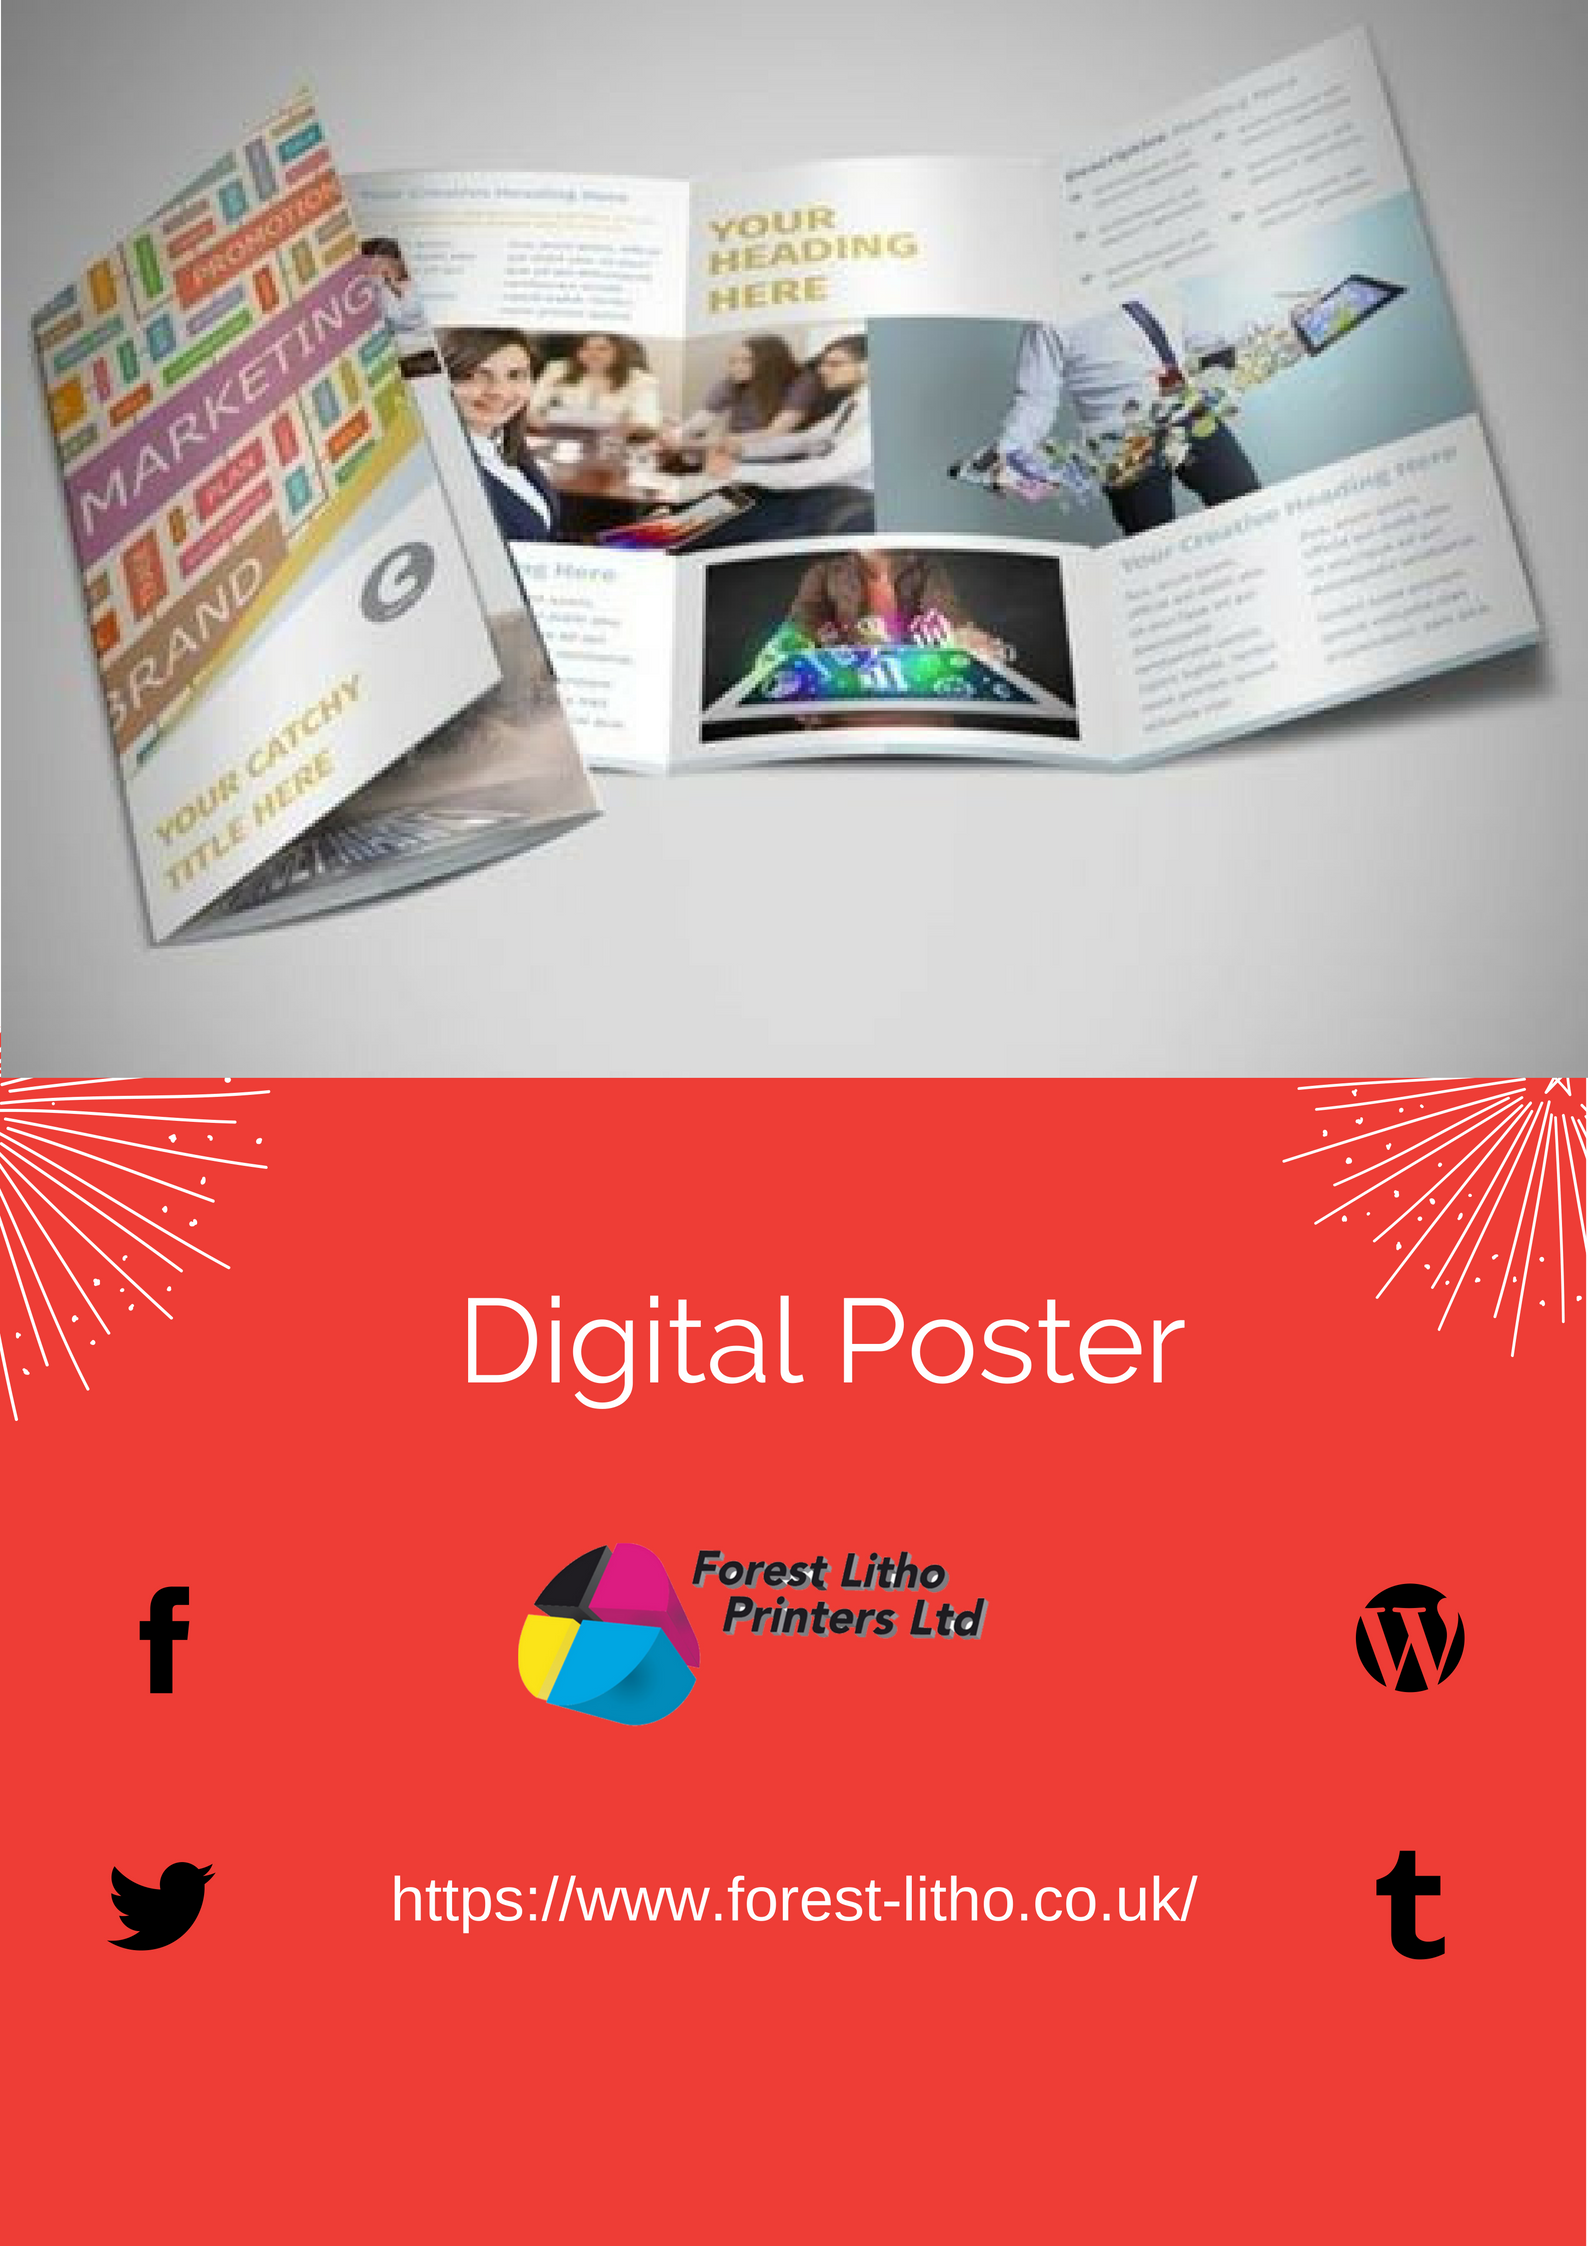 Get Large Size Poster Printed On 170gsm Silk Material Delivered Rolled Up In A Tube By Forest Litho Printers Uk Order Online No Poster Prints Poster Posters Uk